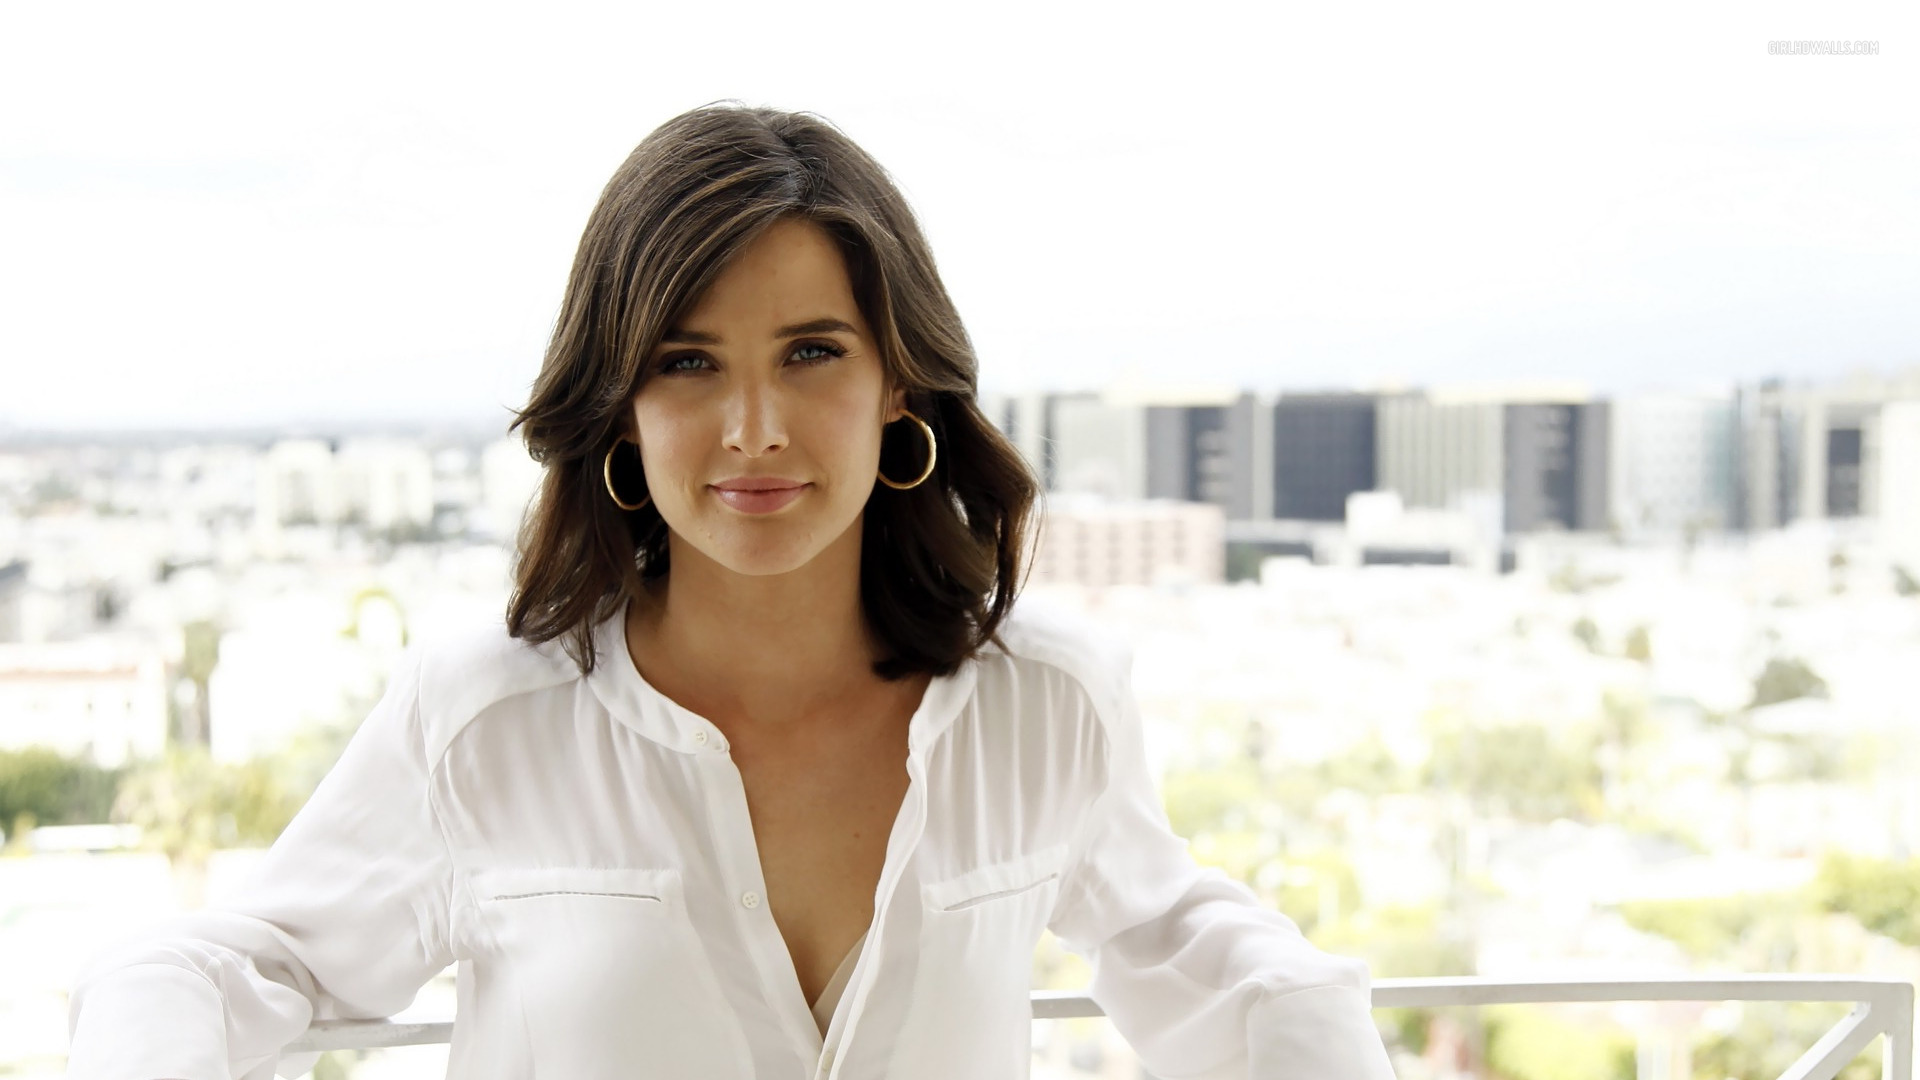 1920x1080 - Cobie Smulders Wallpapers 24